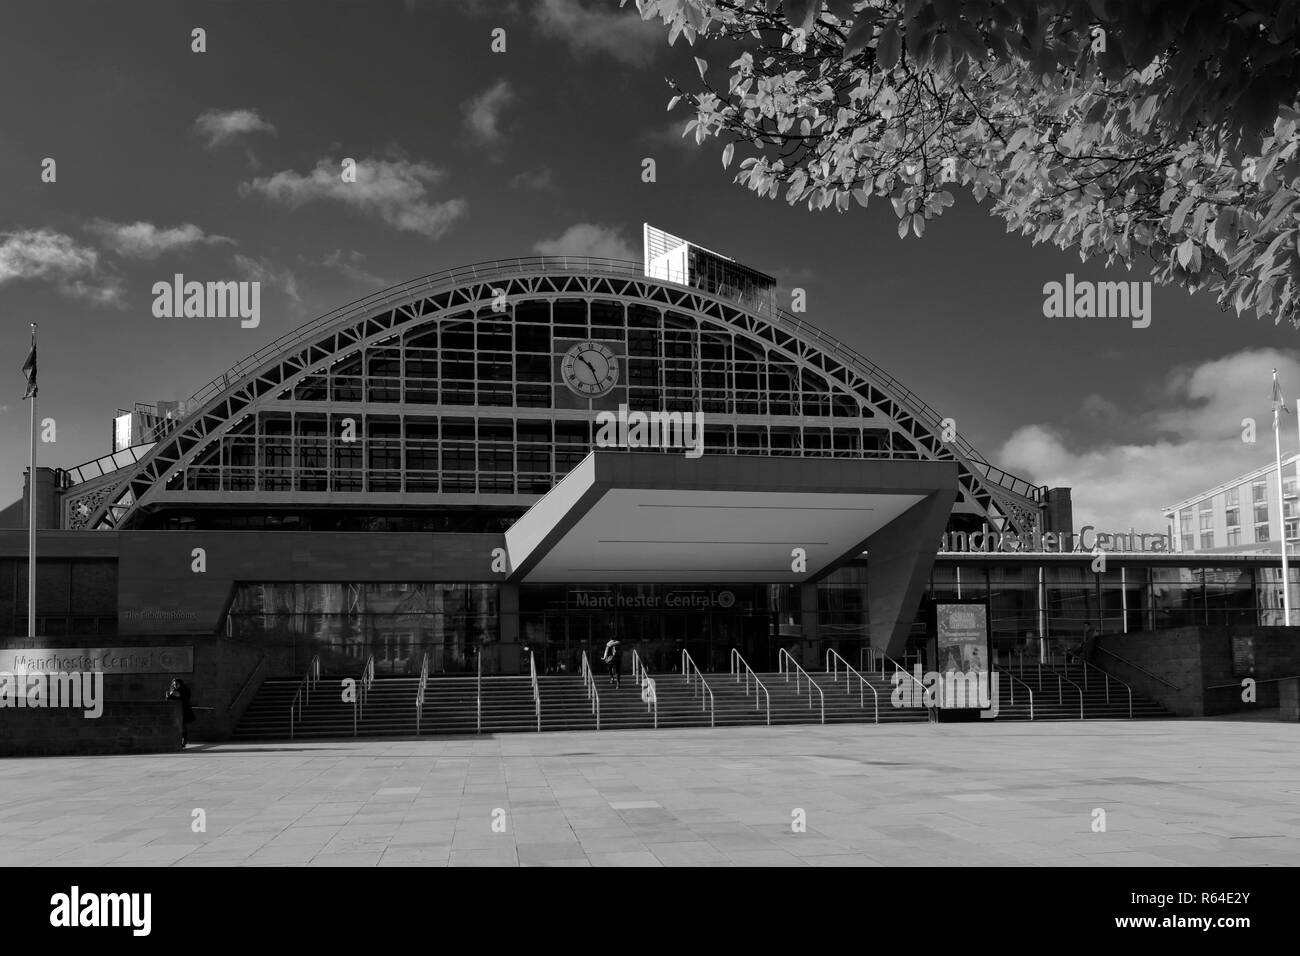 Manchester Central Convention Complex, Manchester City, Lancashire, England, UK - Stock Image